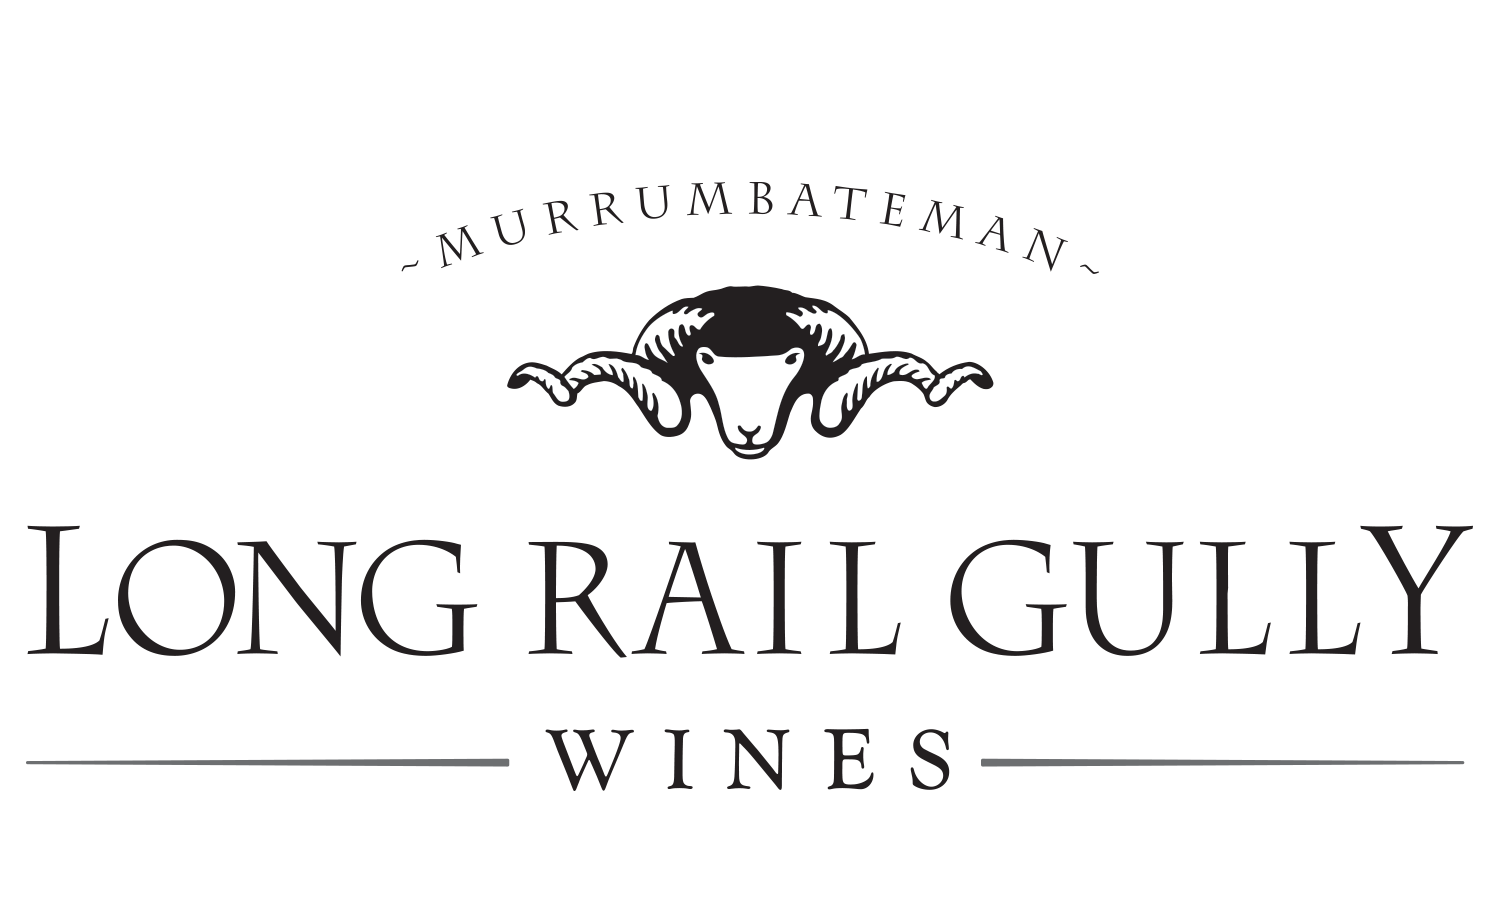 Long Rail Gully Wines